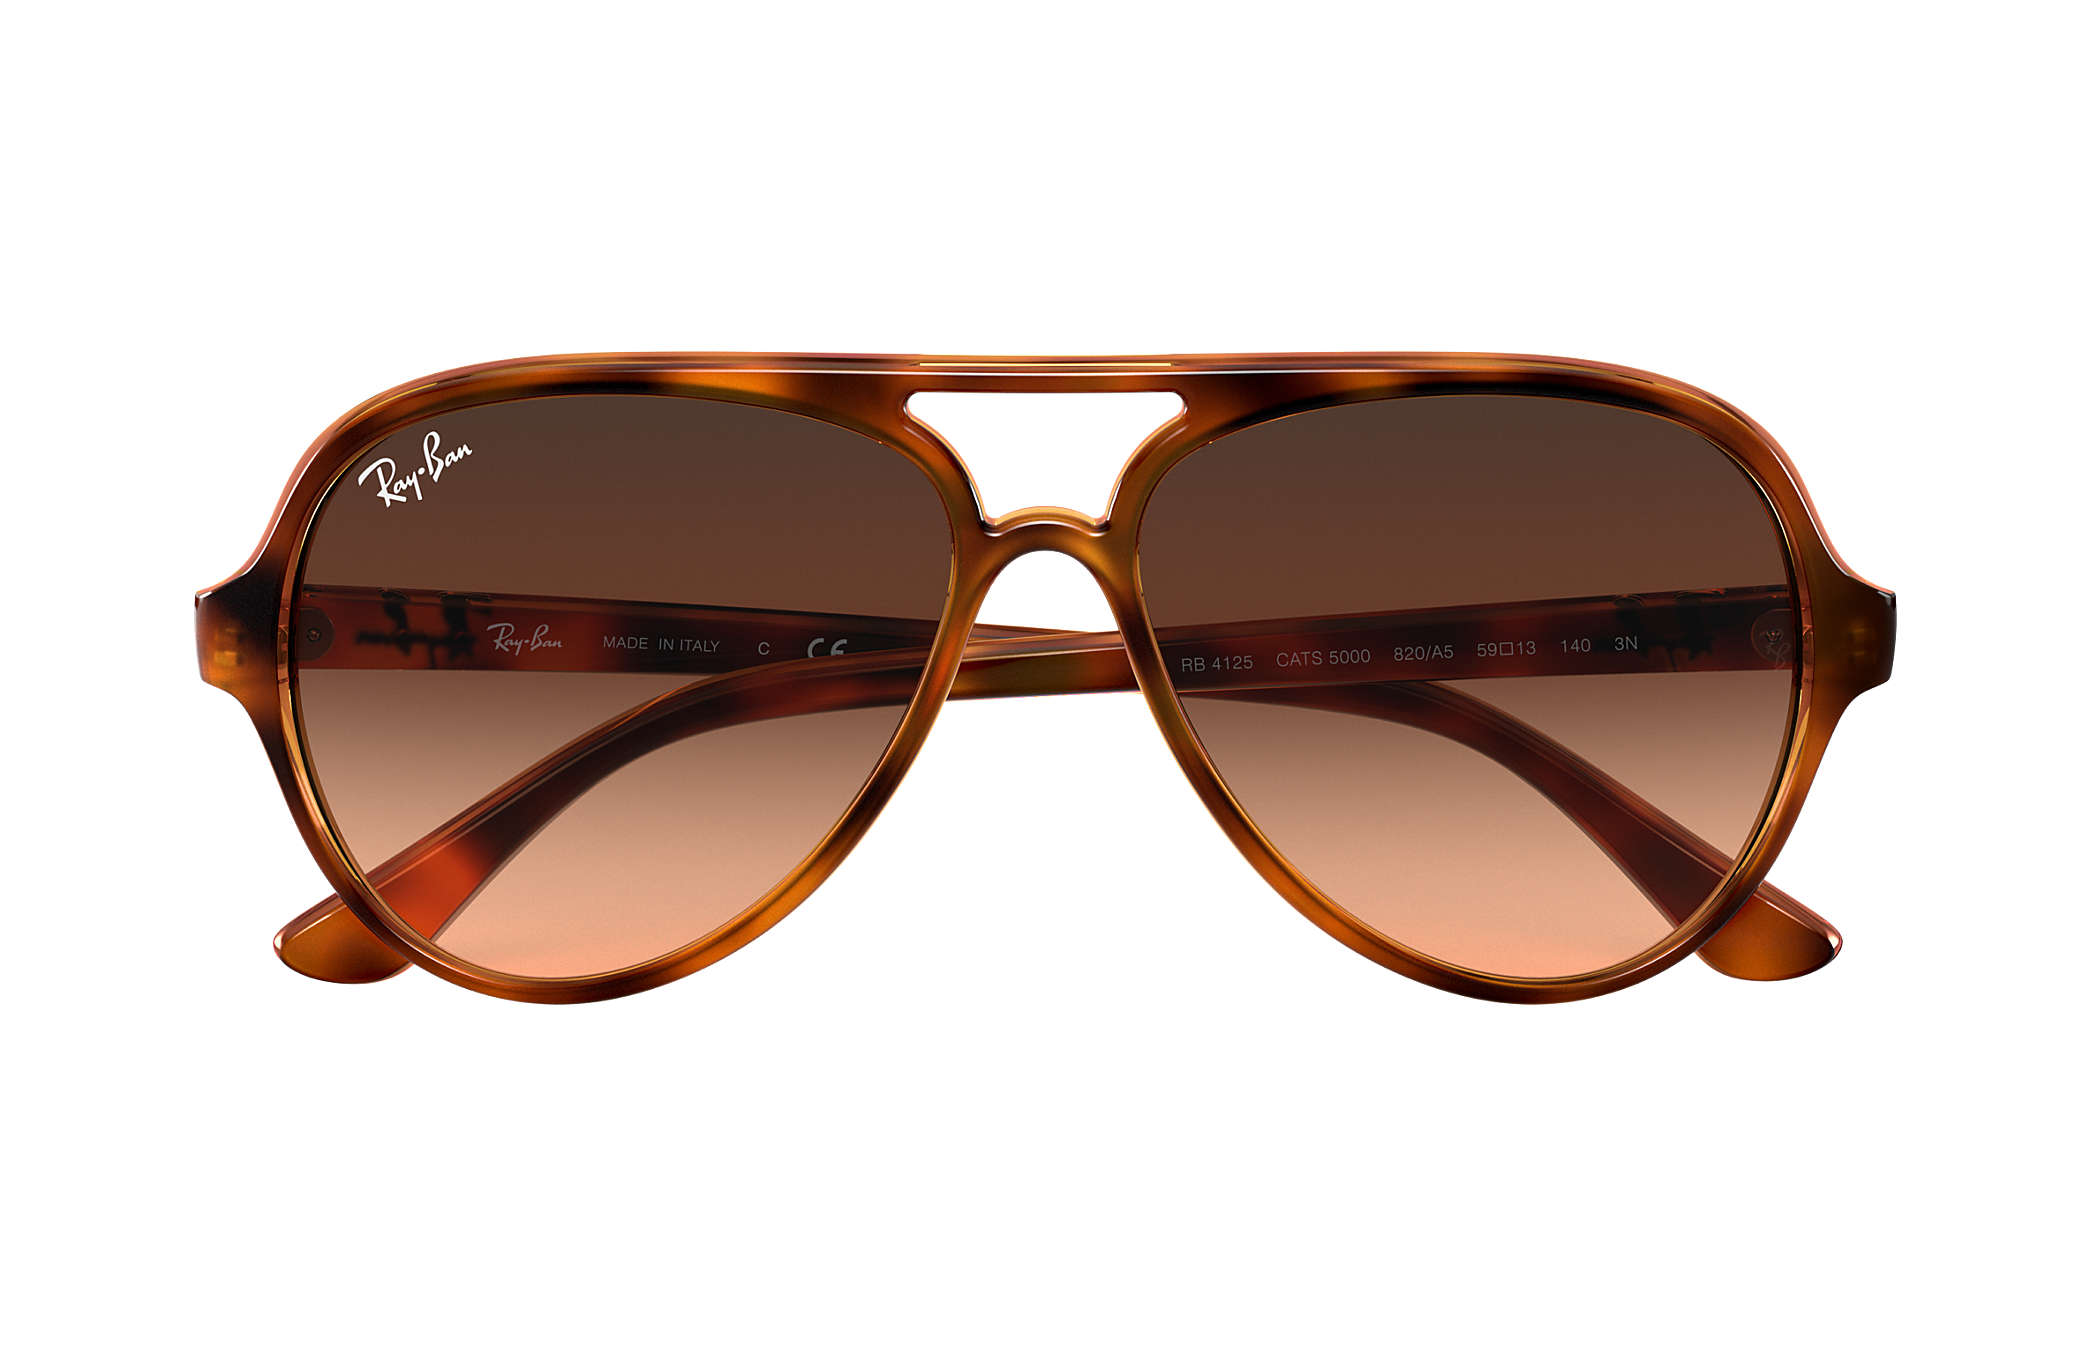 f615f961c9e06 Ray-Ban Cats 5000 Classic RB4125 Tortoise - Injected - Pink Brown ...